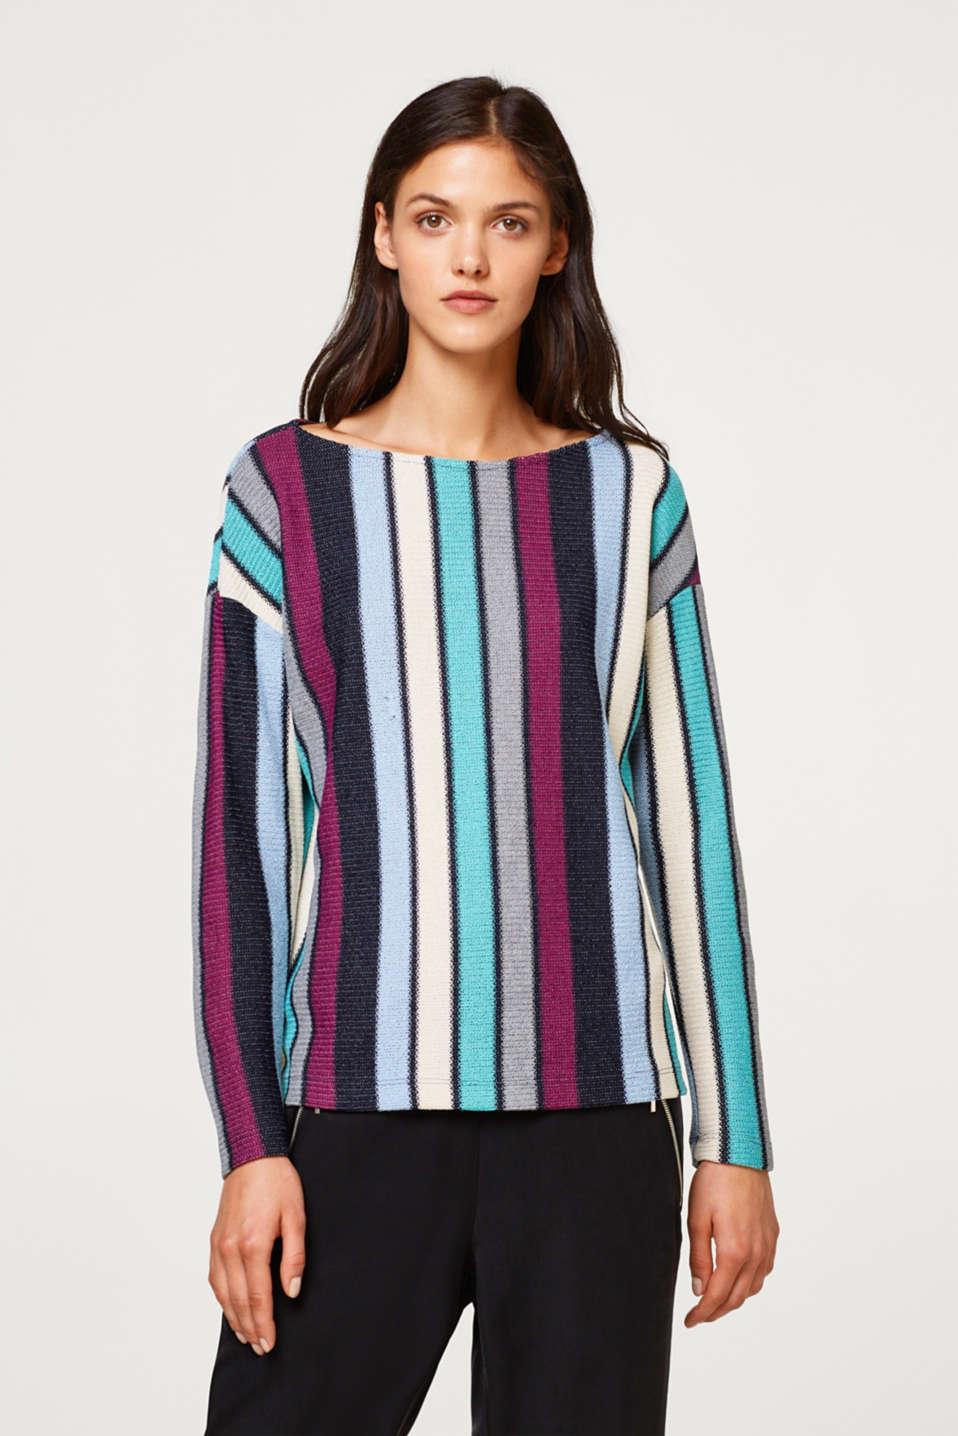 Esprit - Sweatshirt with multi-coloured stripes